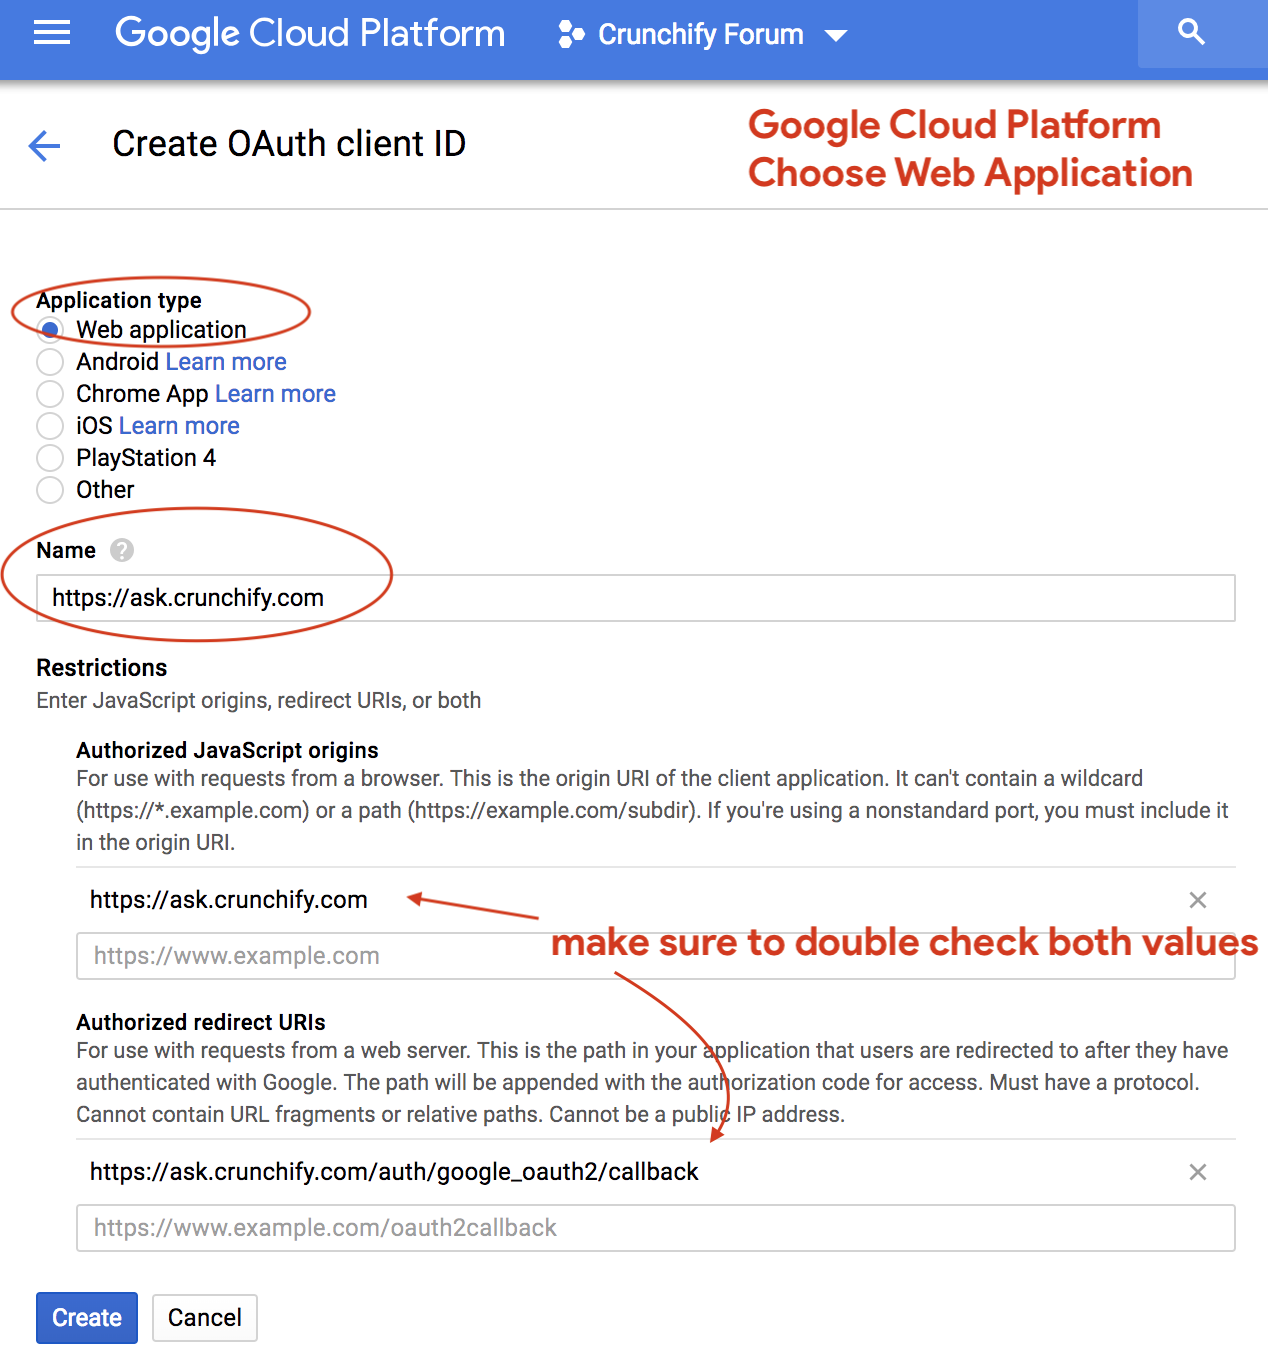 Google Cloud Platform - Choose Web Application